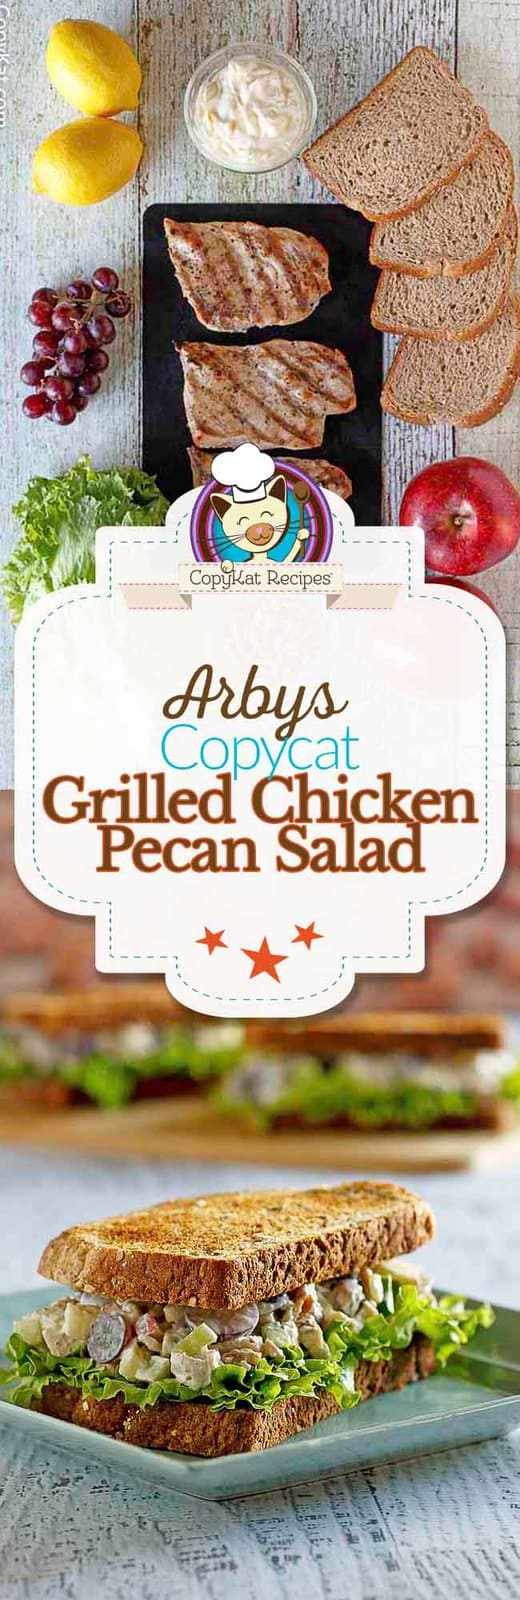 You can recreate the Arby's Grilled Chicken Pecan salad from scratch with this easy copycat recipe.